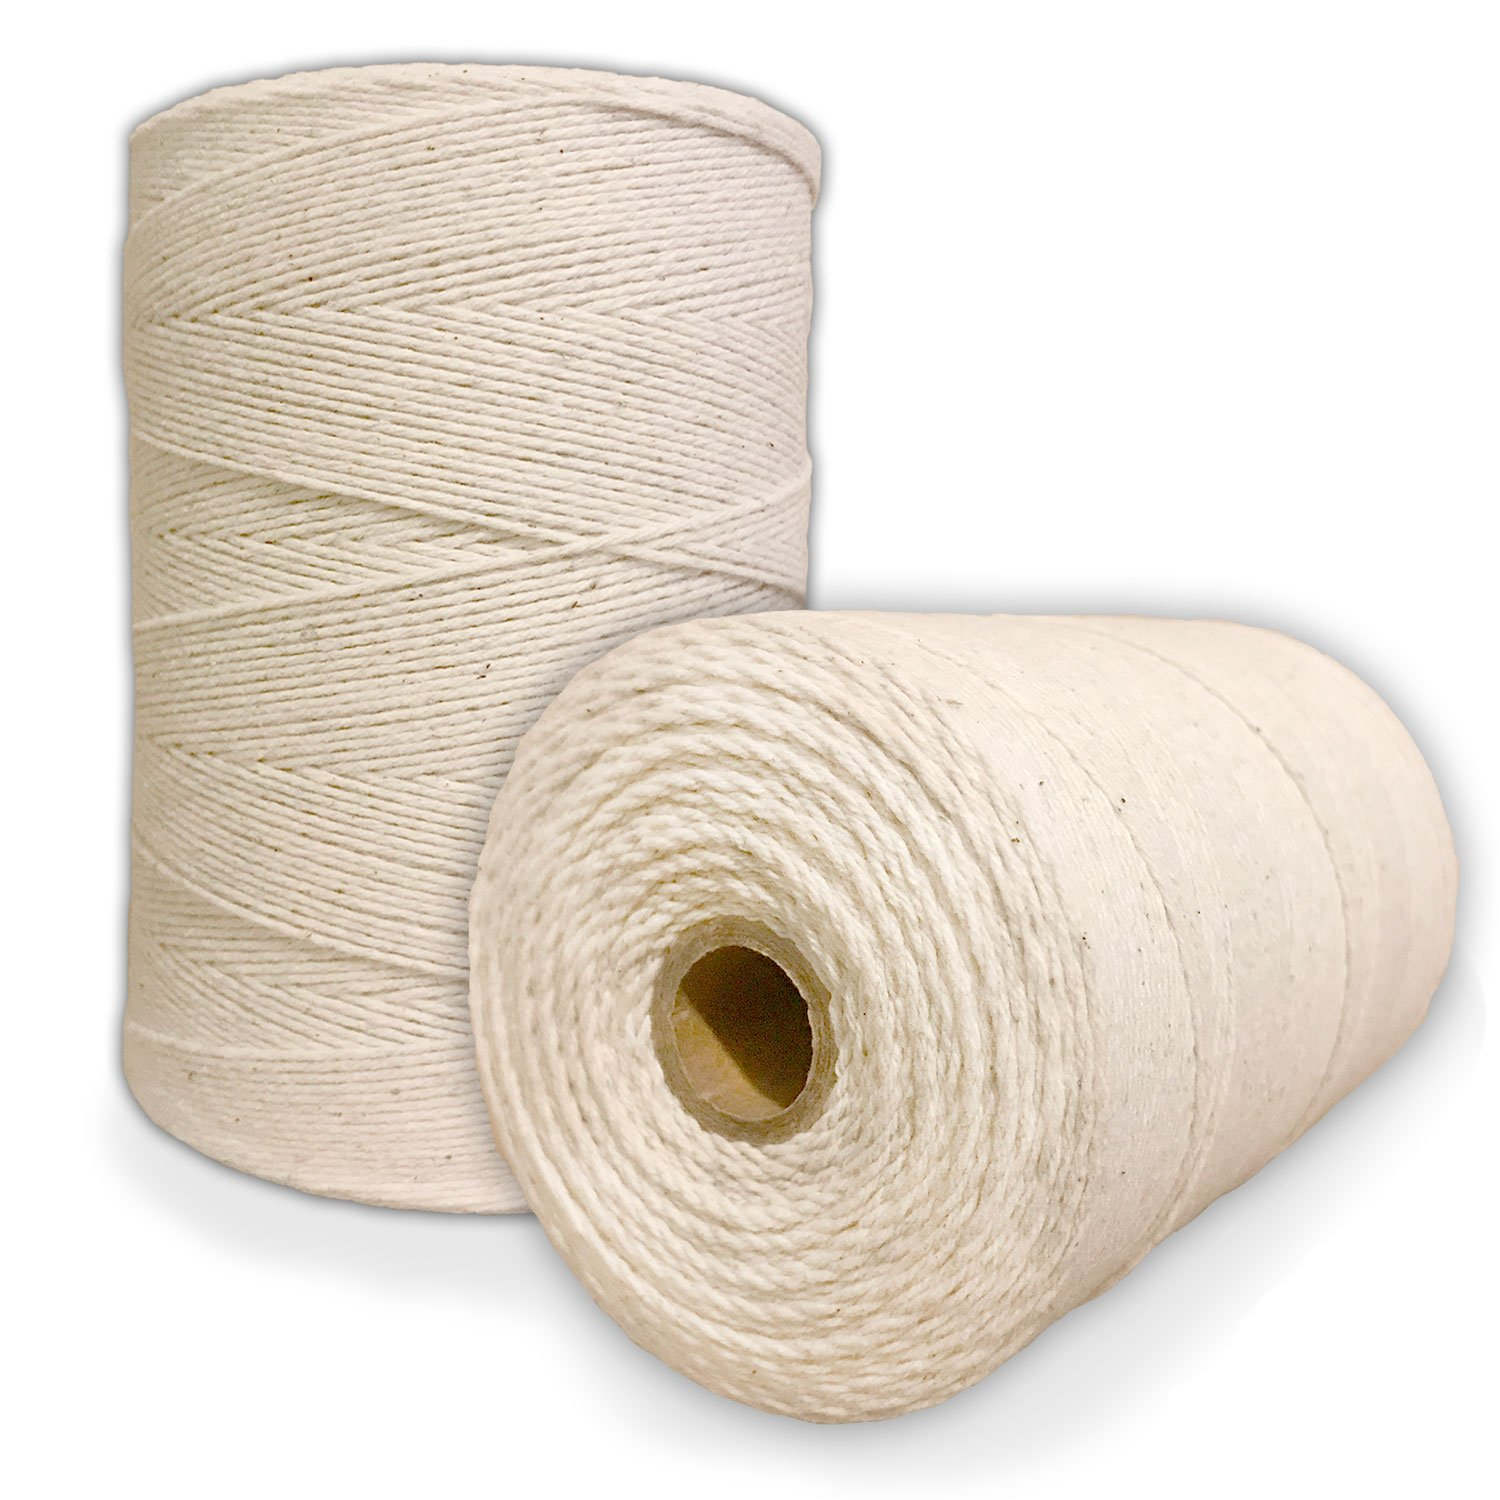 Get Quotations Durable Loom Warp Thread Natural Off White 8 4 Yarn